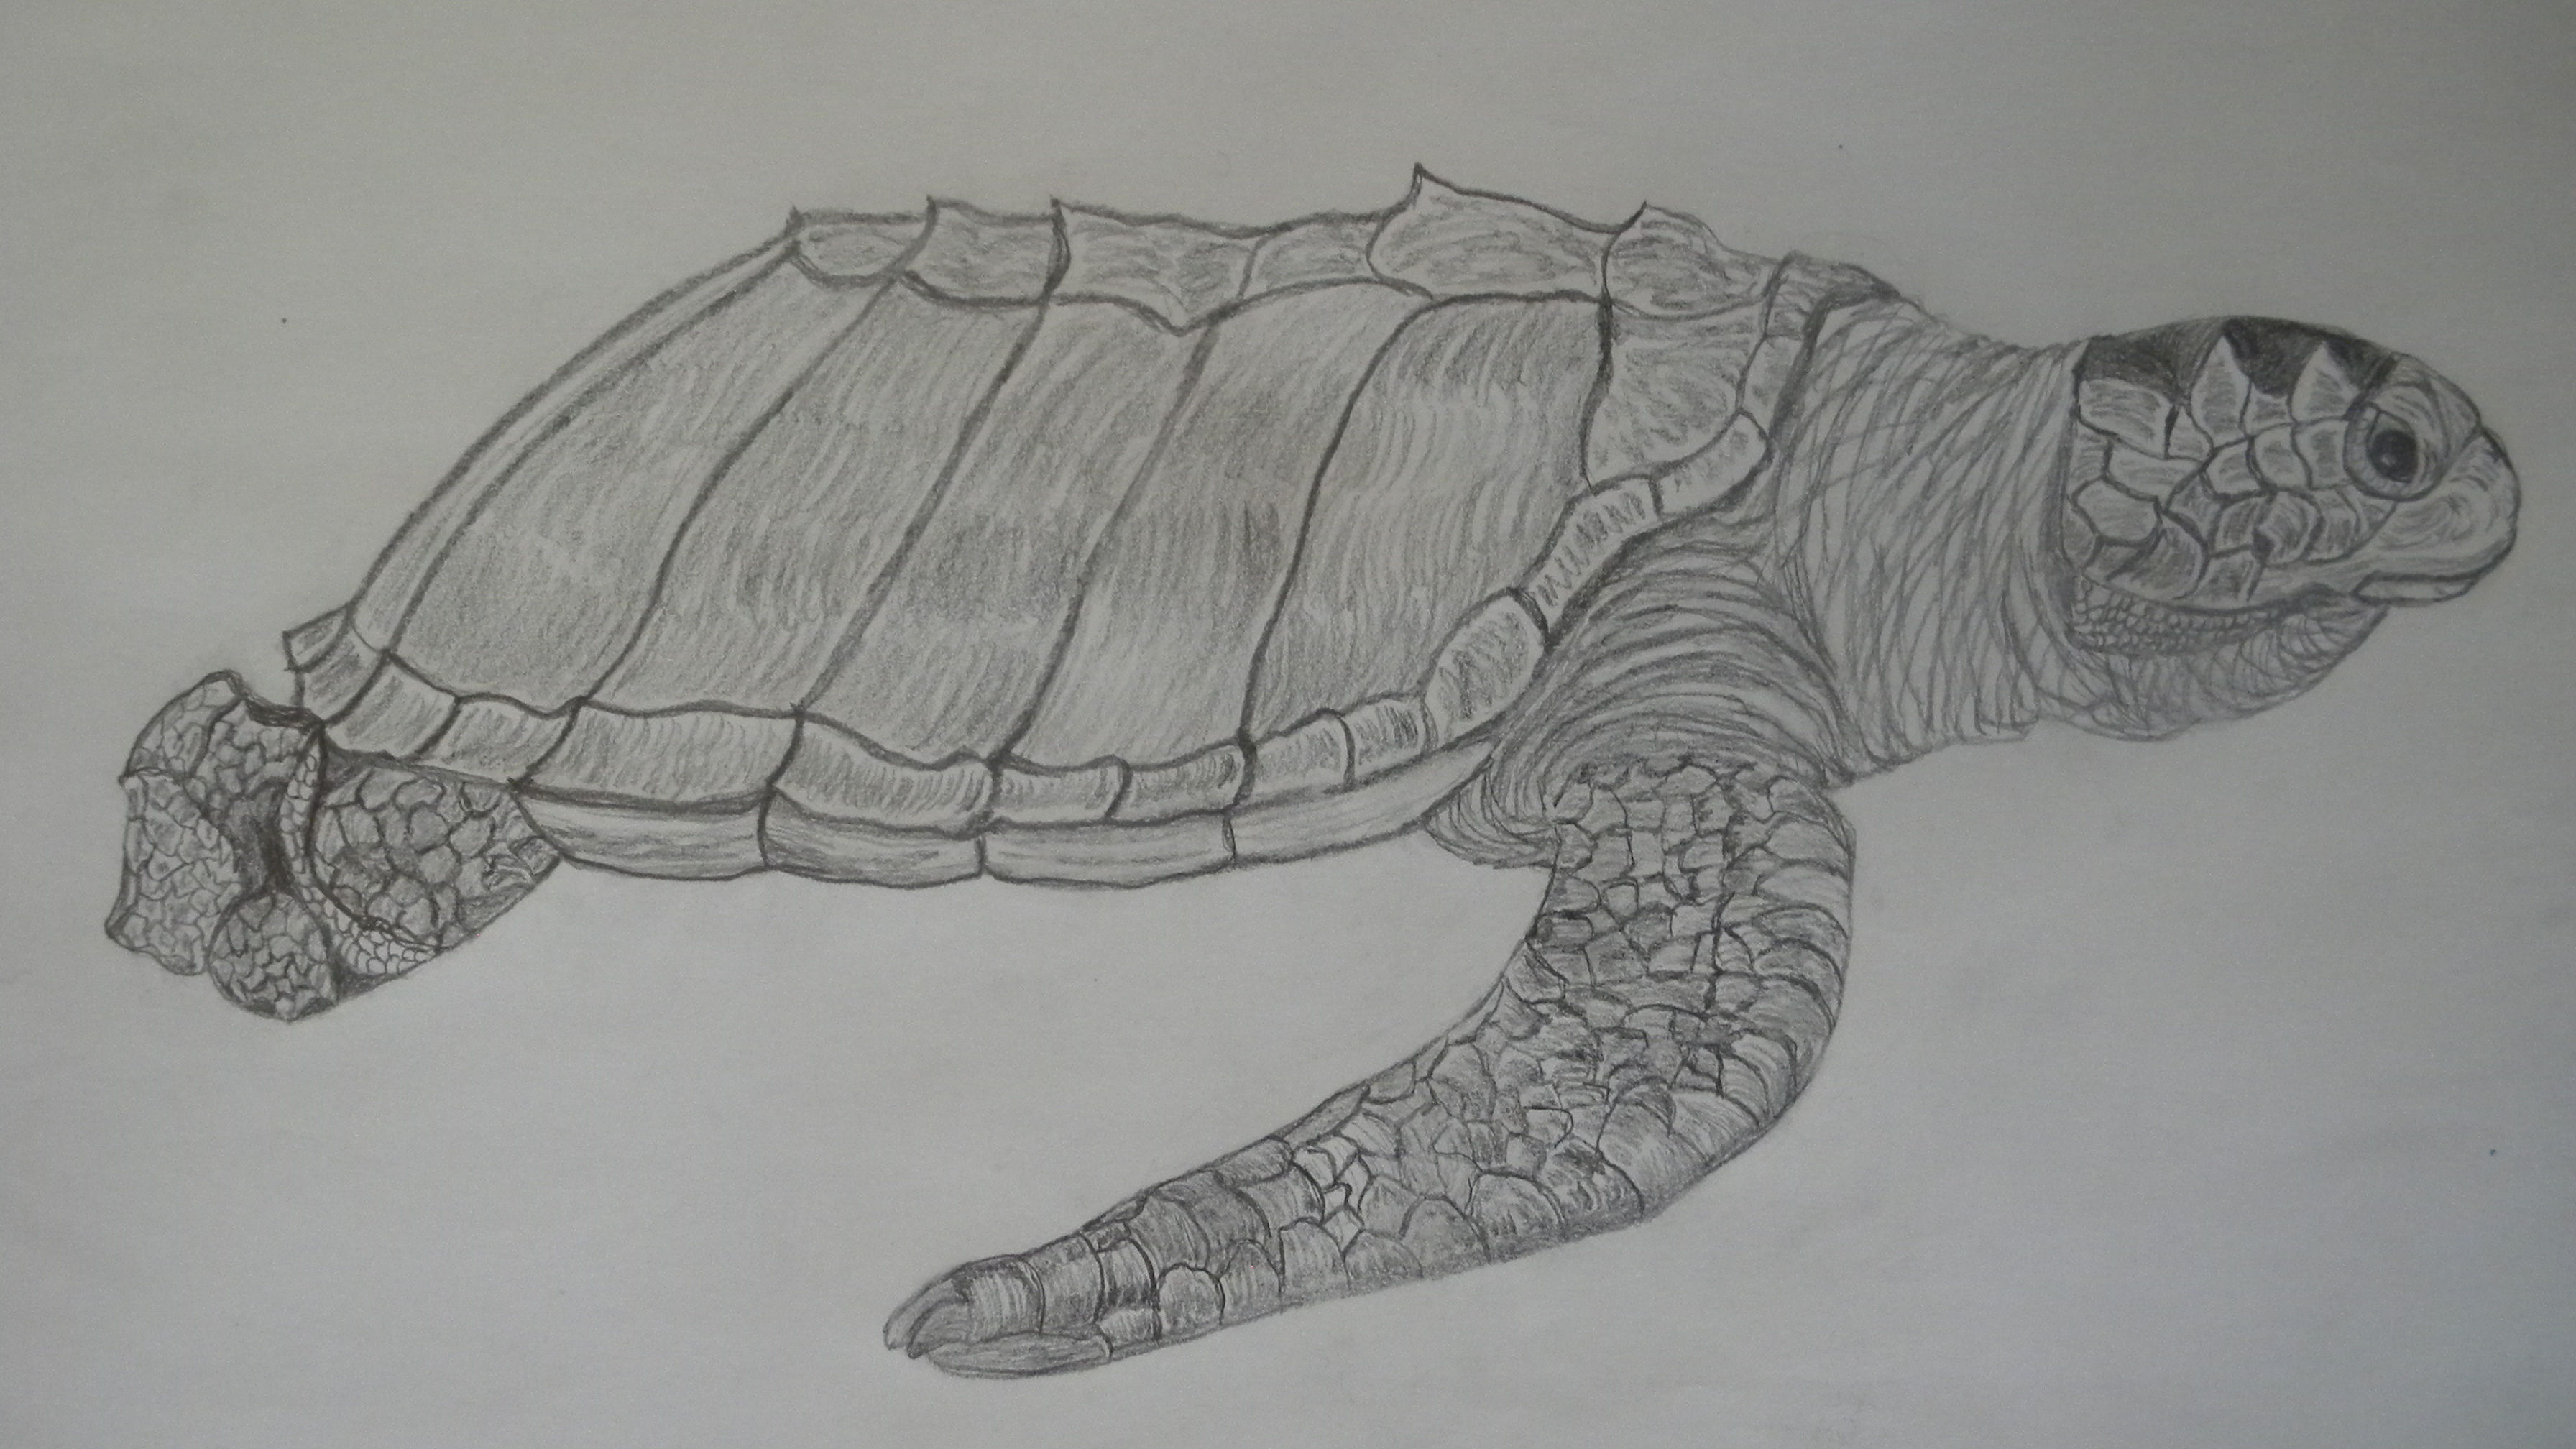 Drawn sea turtle graphite pencil Drawings – Patsy's Turtle Ridley